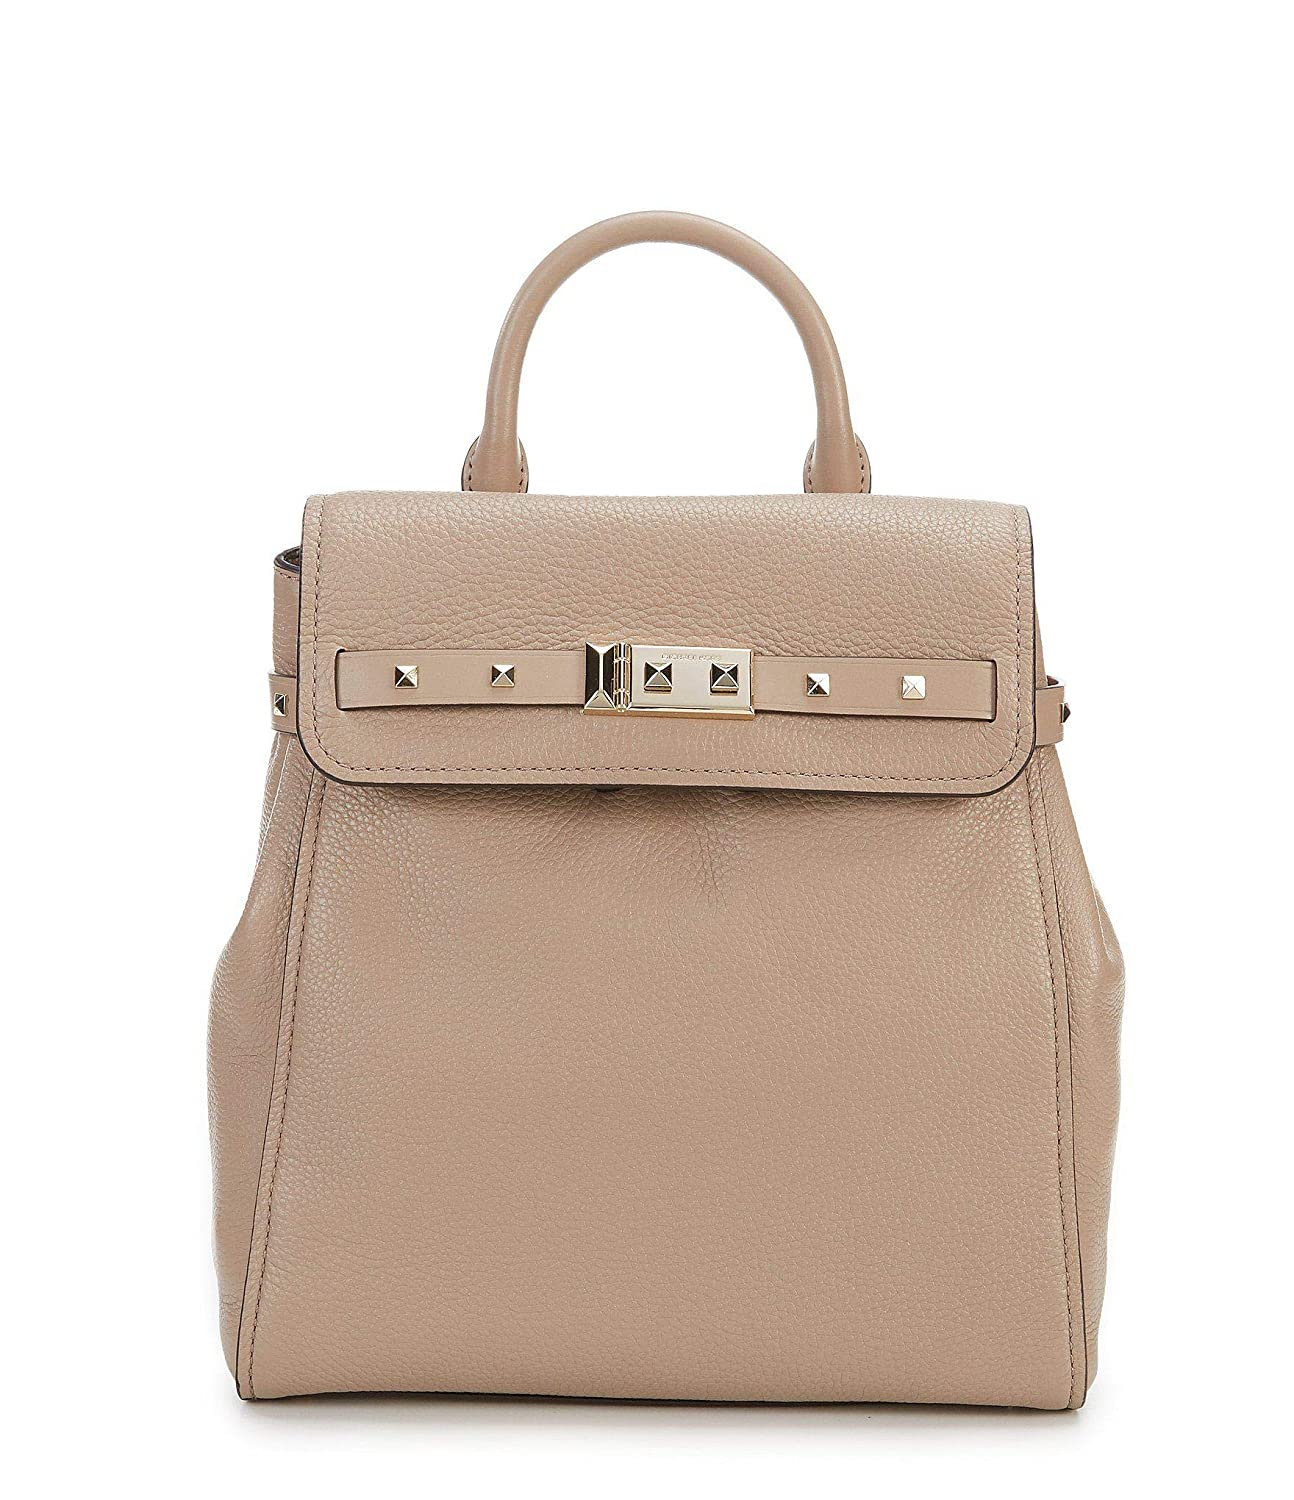 fc15f519483344 Amazon.com: Michael Kors Addison Medium Leather Backpack - Fawn: Shoes